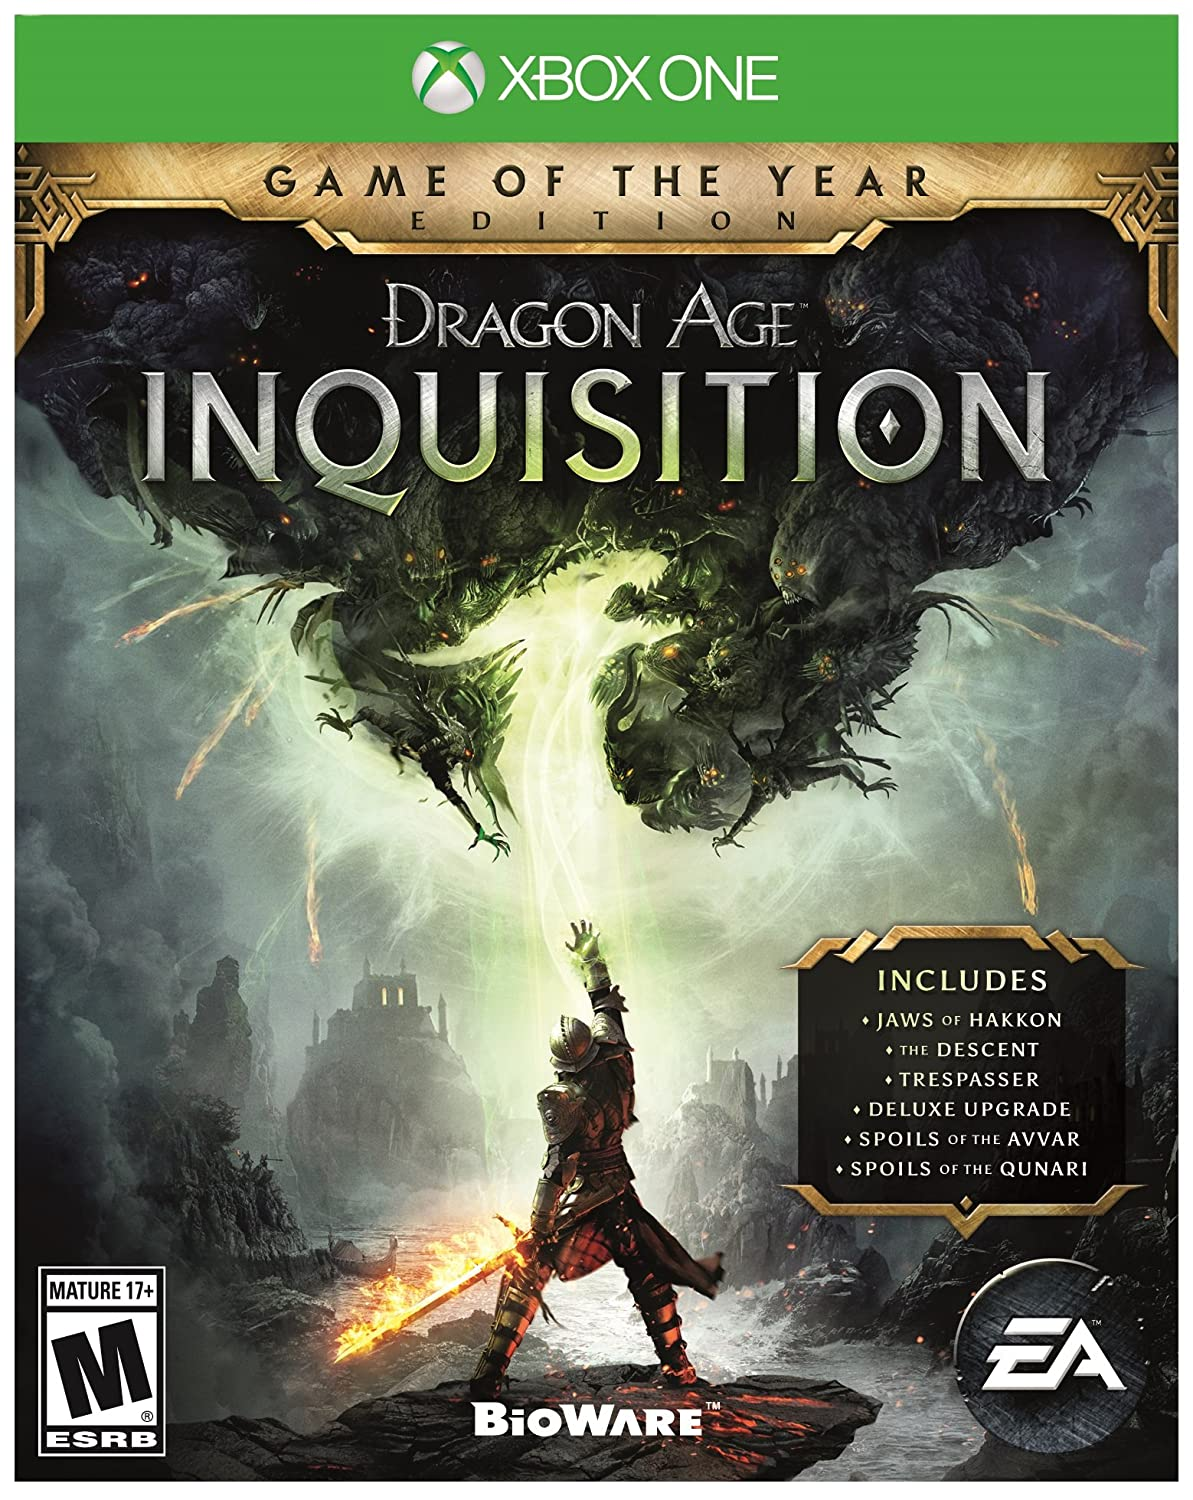 Dragon Age: Inquisition - Game of the Year Edition - Xbox One